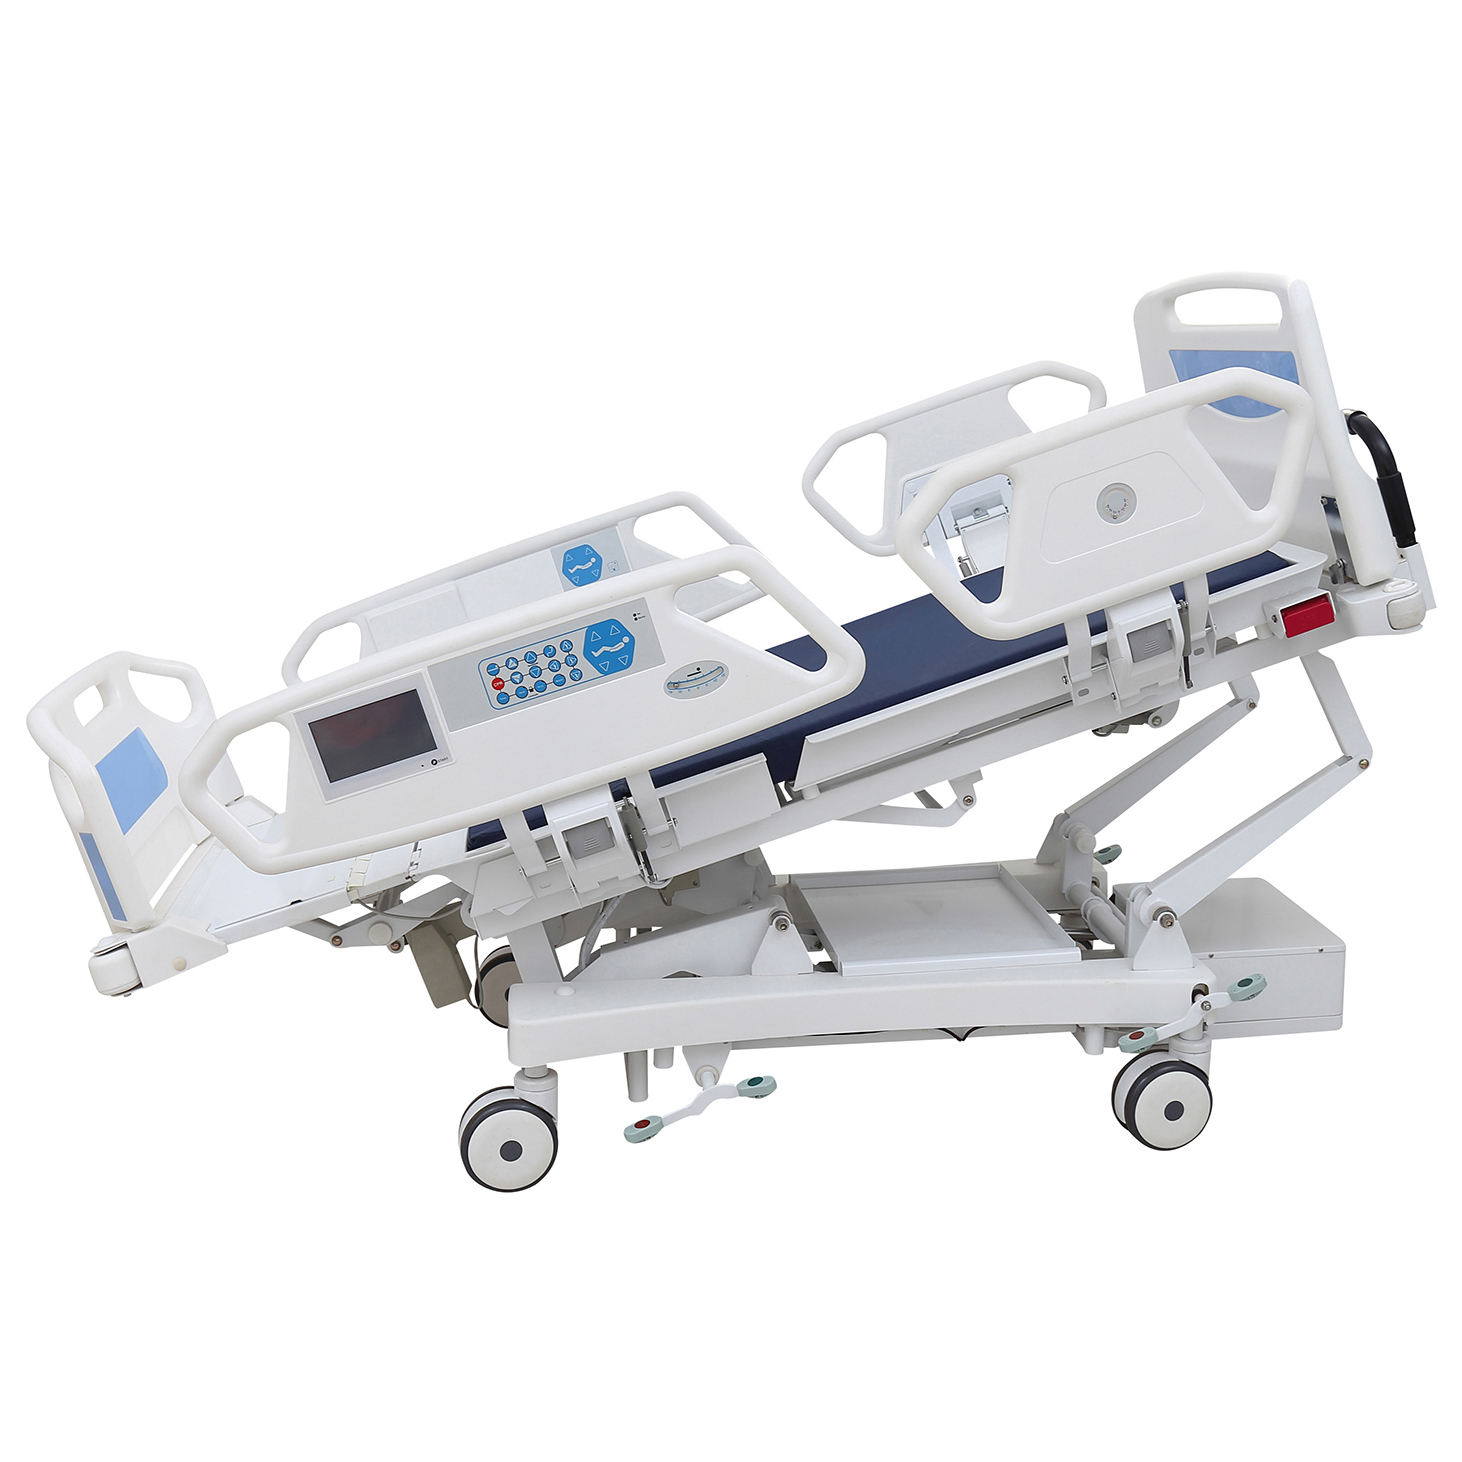 Mufti-function folding medical ICU hospital bed electrical